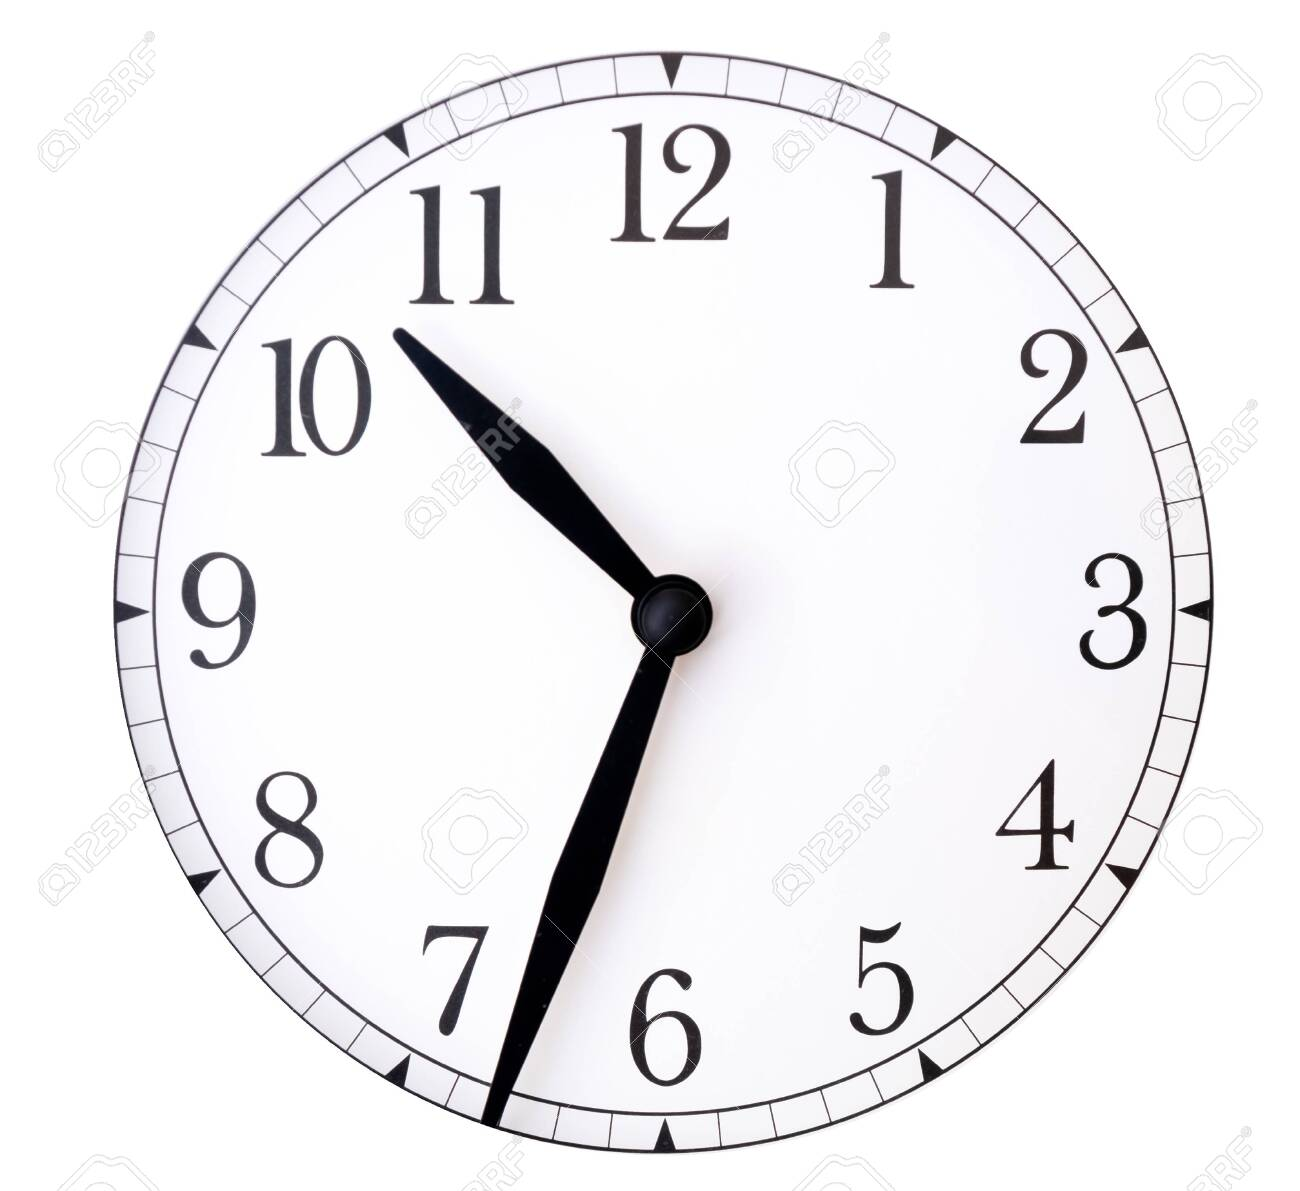 photo relating to Printable Clock Face With Hands titled clock deal with and arms upon white heritage/ Blank clock confront with..